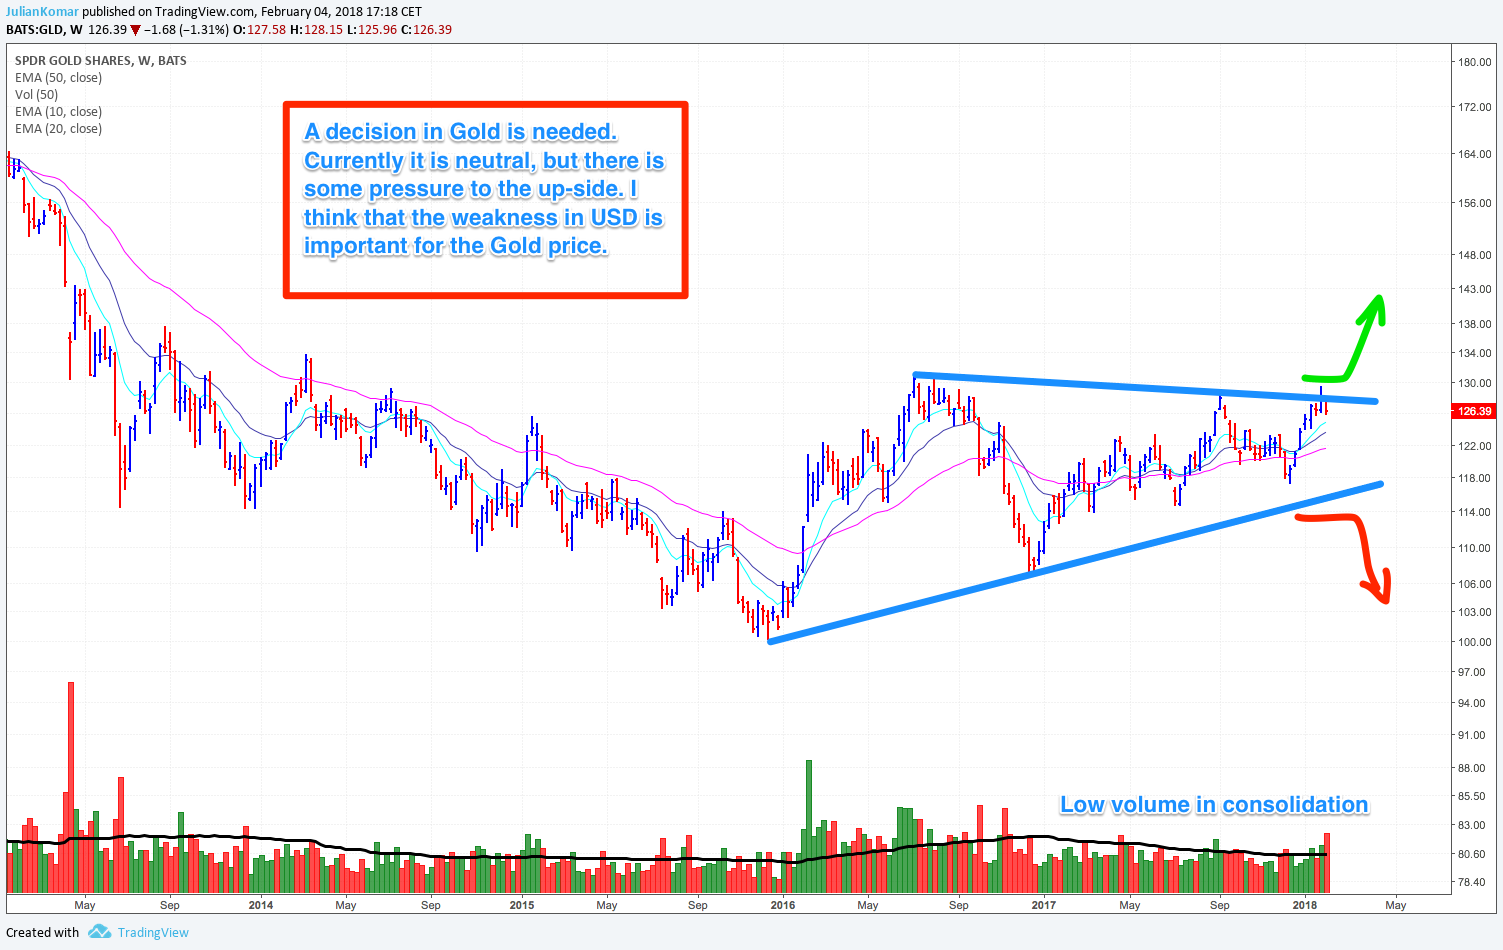 Gold with the GLD ETF in the weekly chart